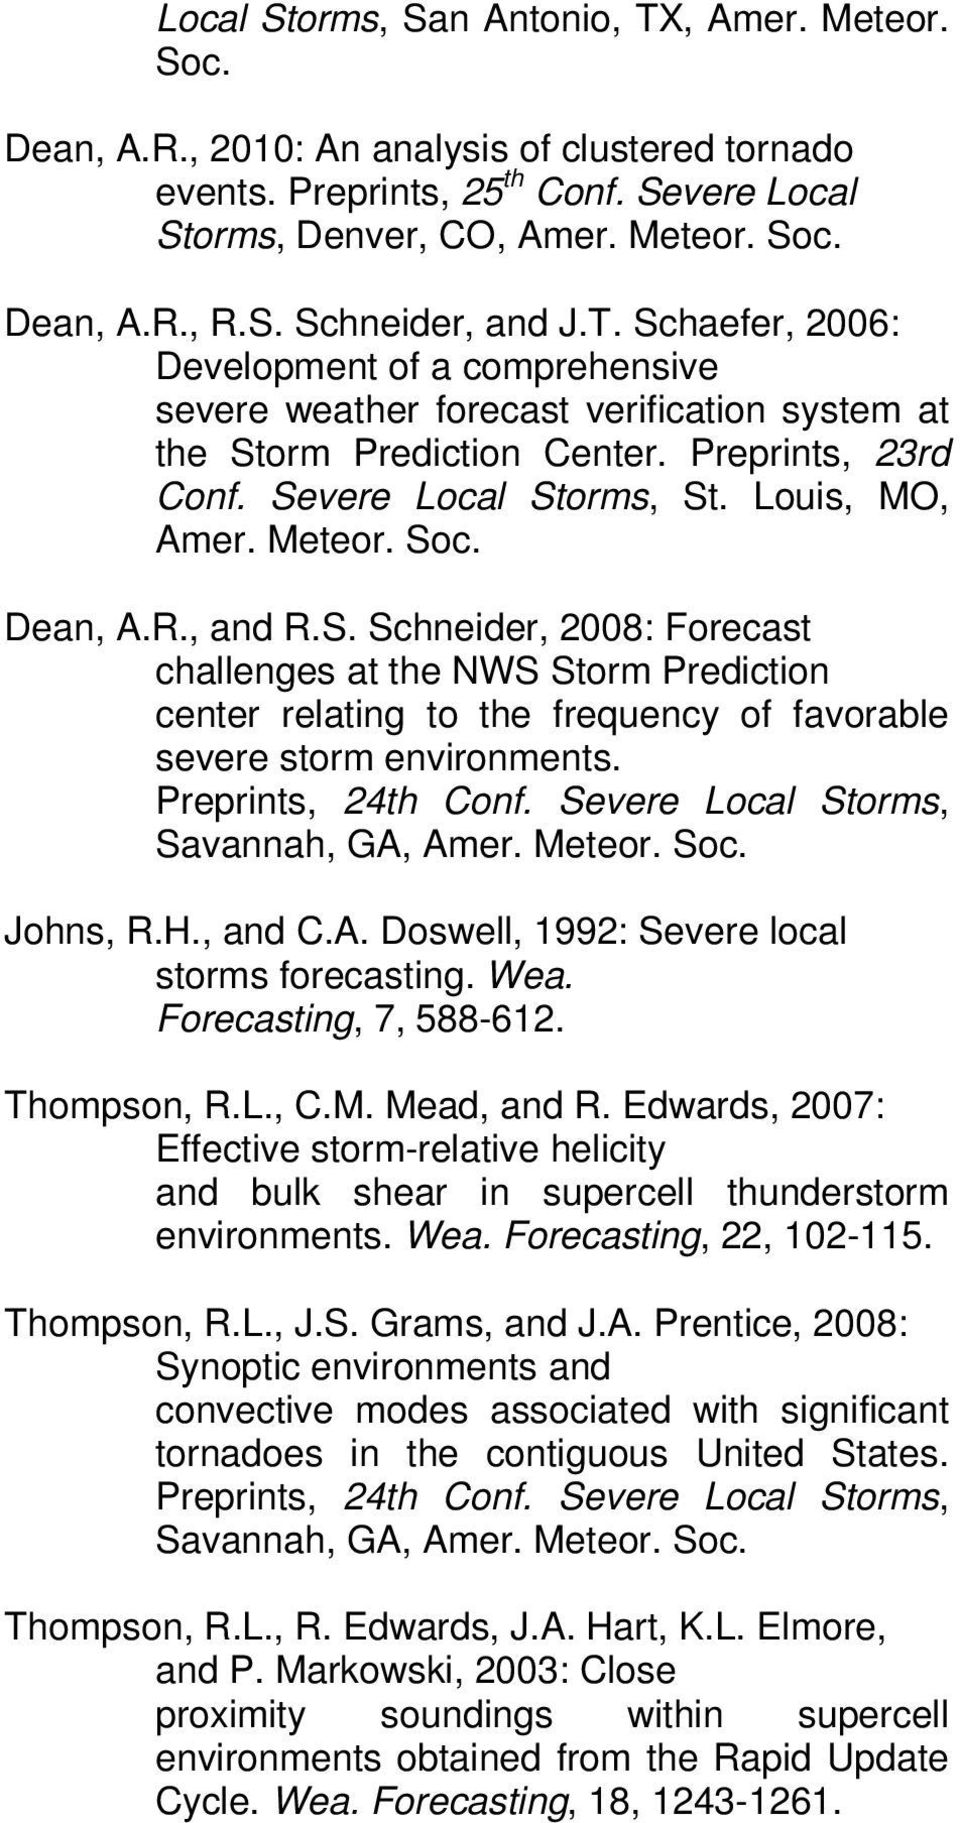 Soc. Dean, A.R., and R.S. Schneider, 2008: Forecast challenges at the NWS Storm Prediction center relating to the frequency of favorable severe storm environments. Preprints, 24th Conf.